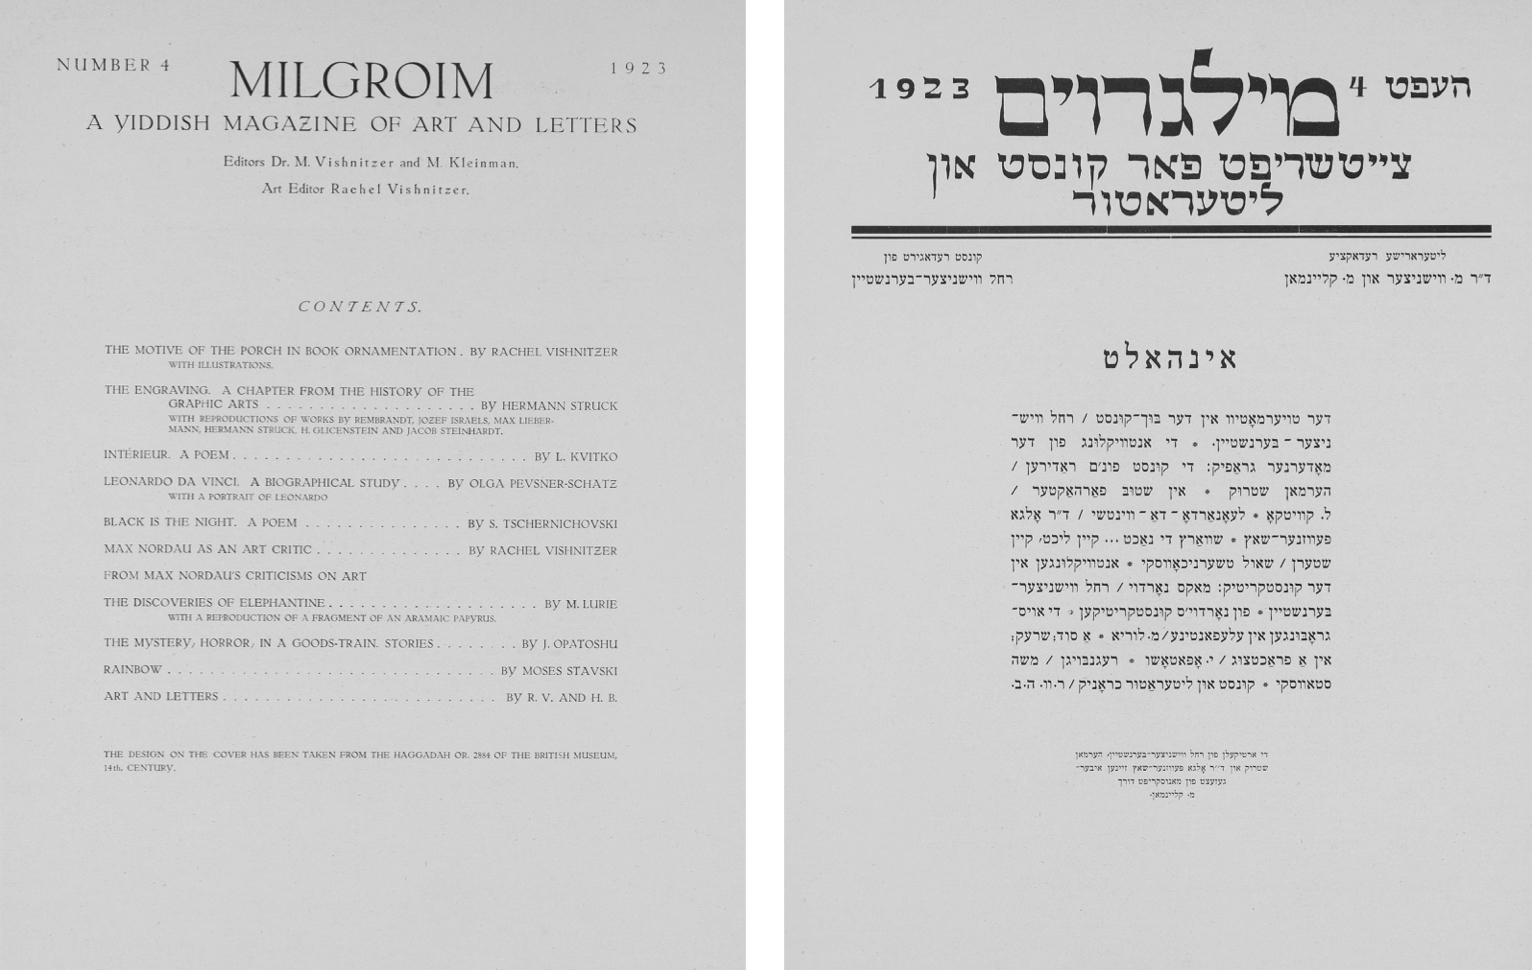 <p>Contents pages of <em>Milgroym</em> issue 4 in English and&nbsp;Yiddish</p>